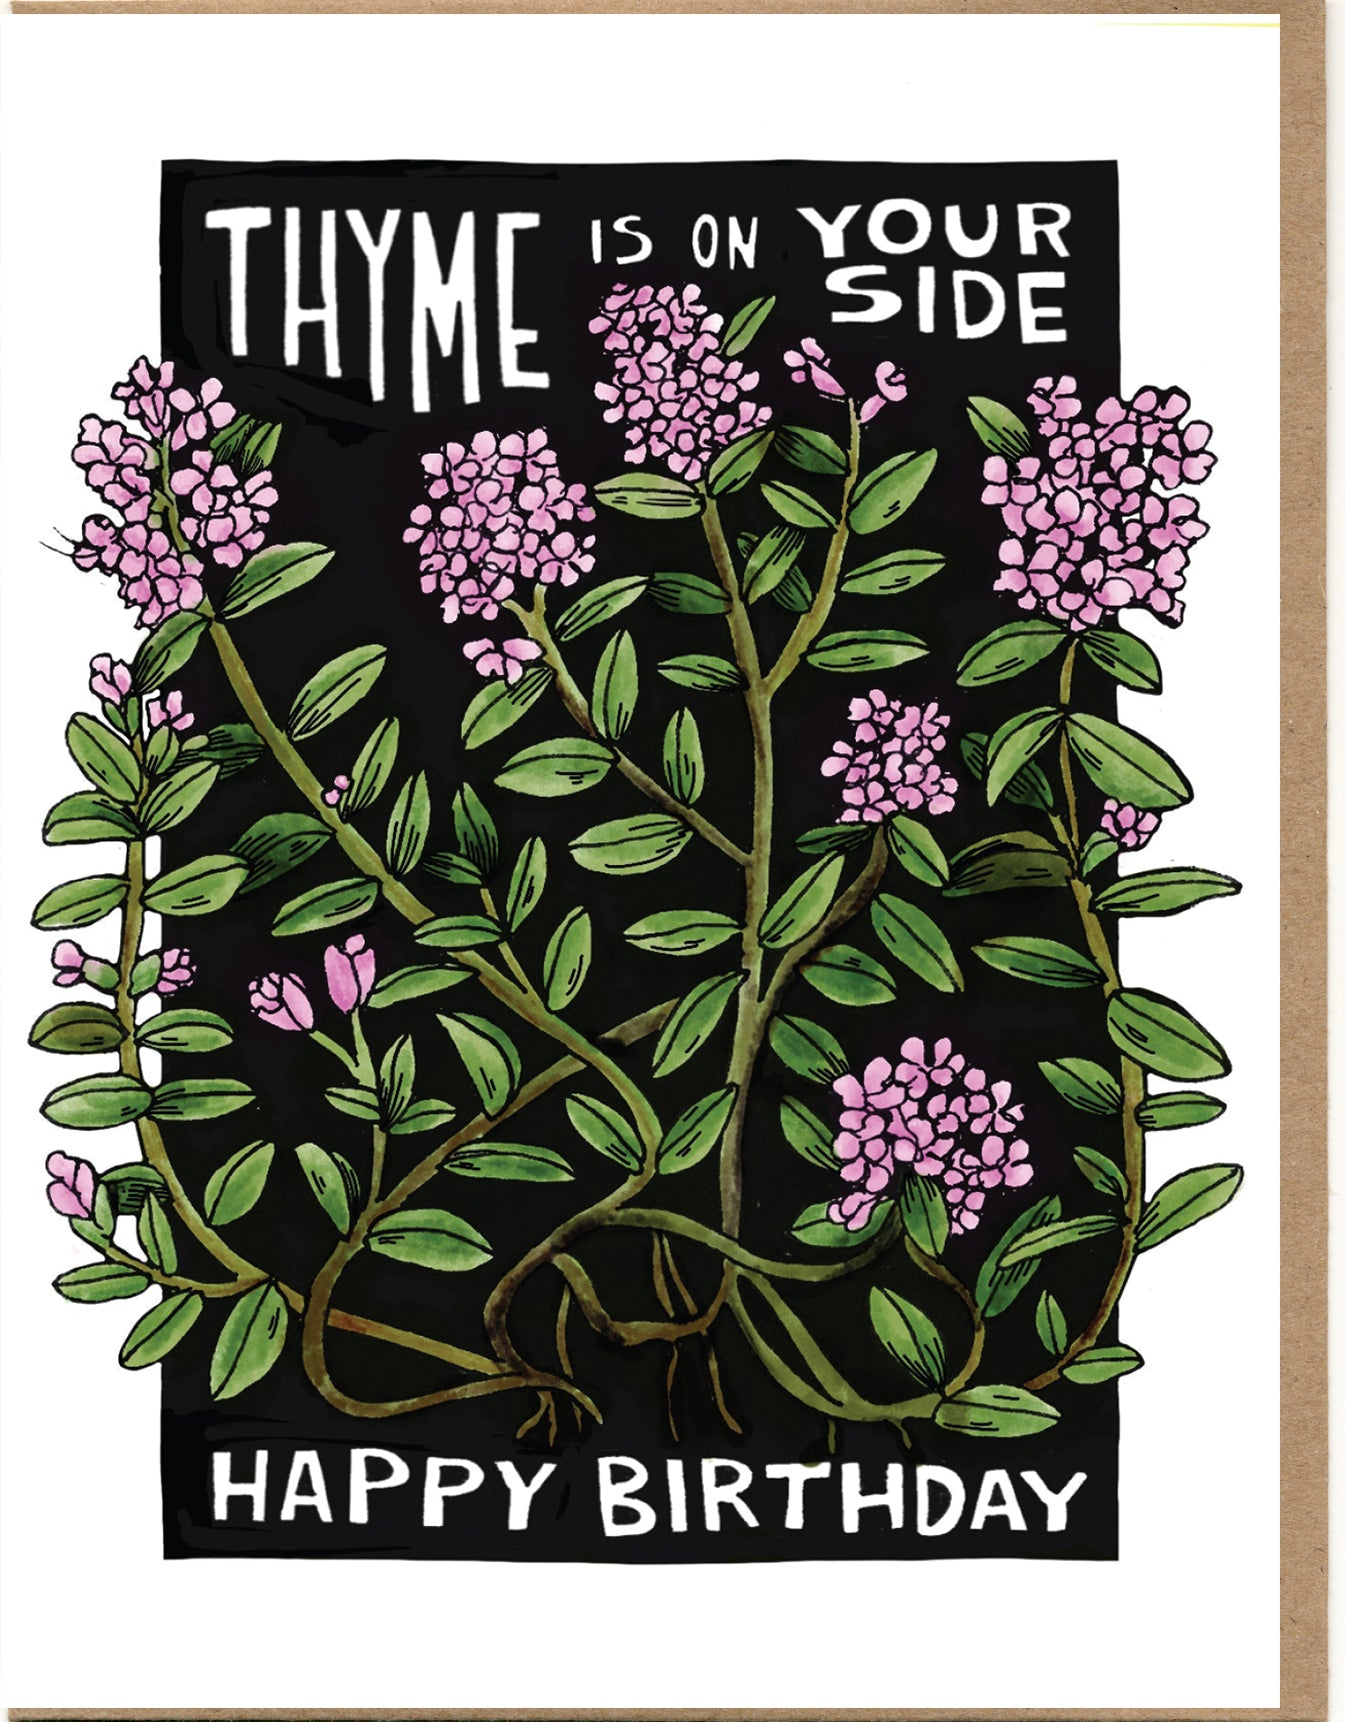 Thyme Is On Your Side, Happy Birthday